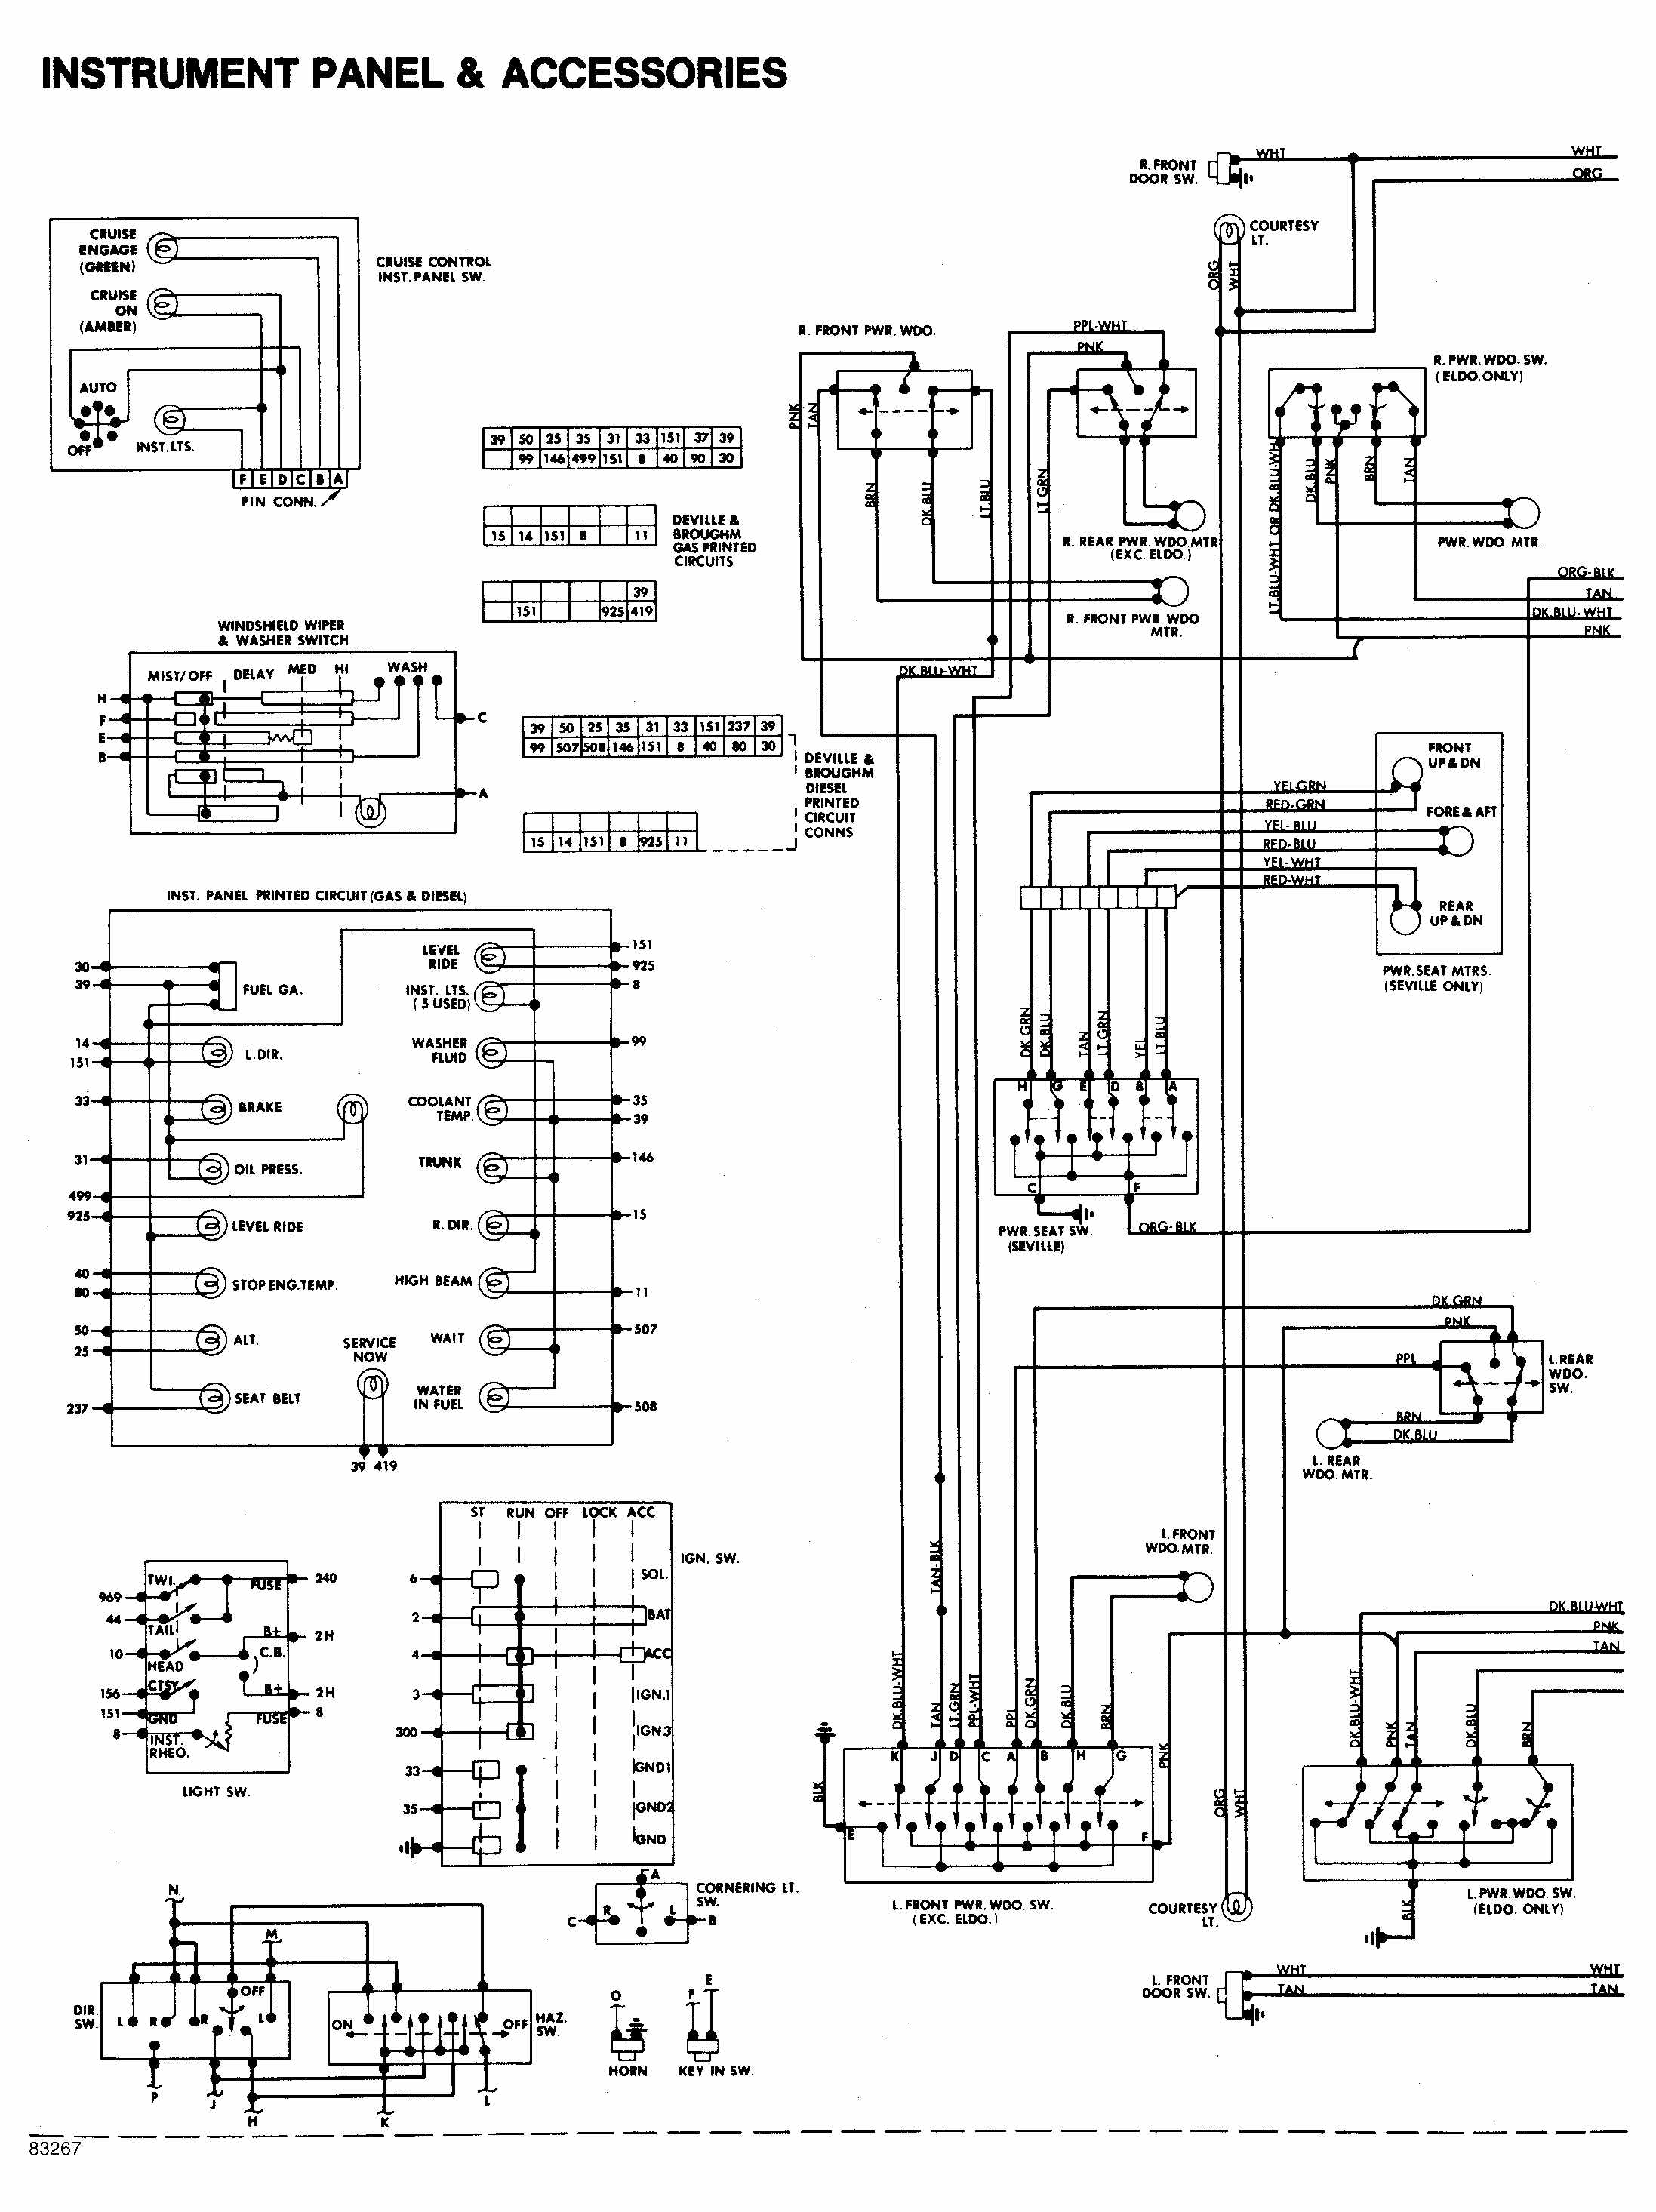 hight resolution of wiring diagram 1997 cadillac deville wiring diagram hub 1997 cadillac deville wiring diagrams simple wiring diagrams